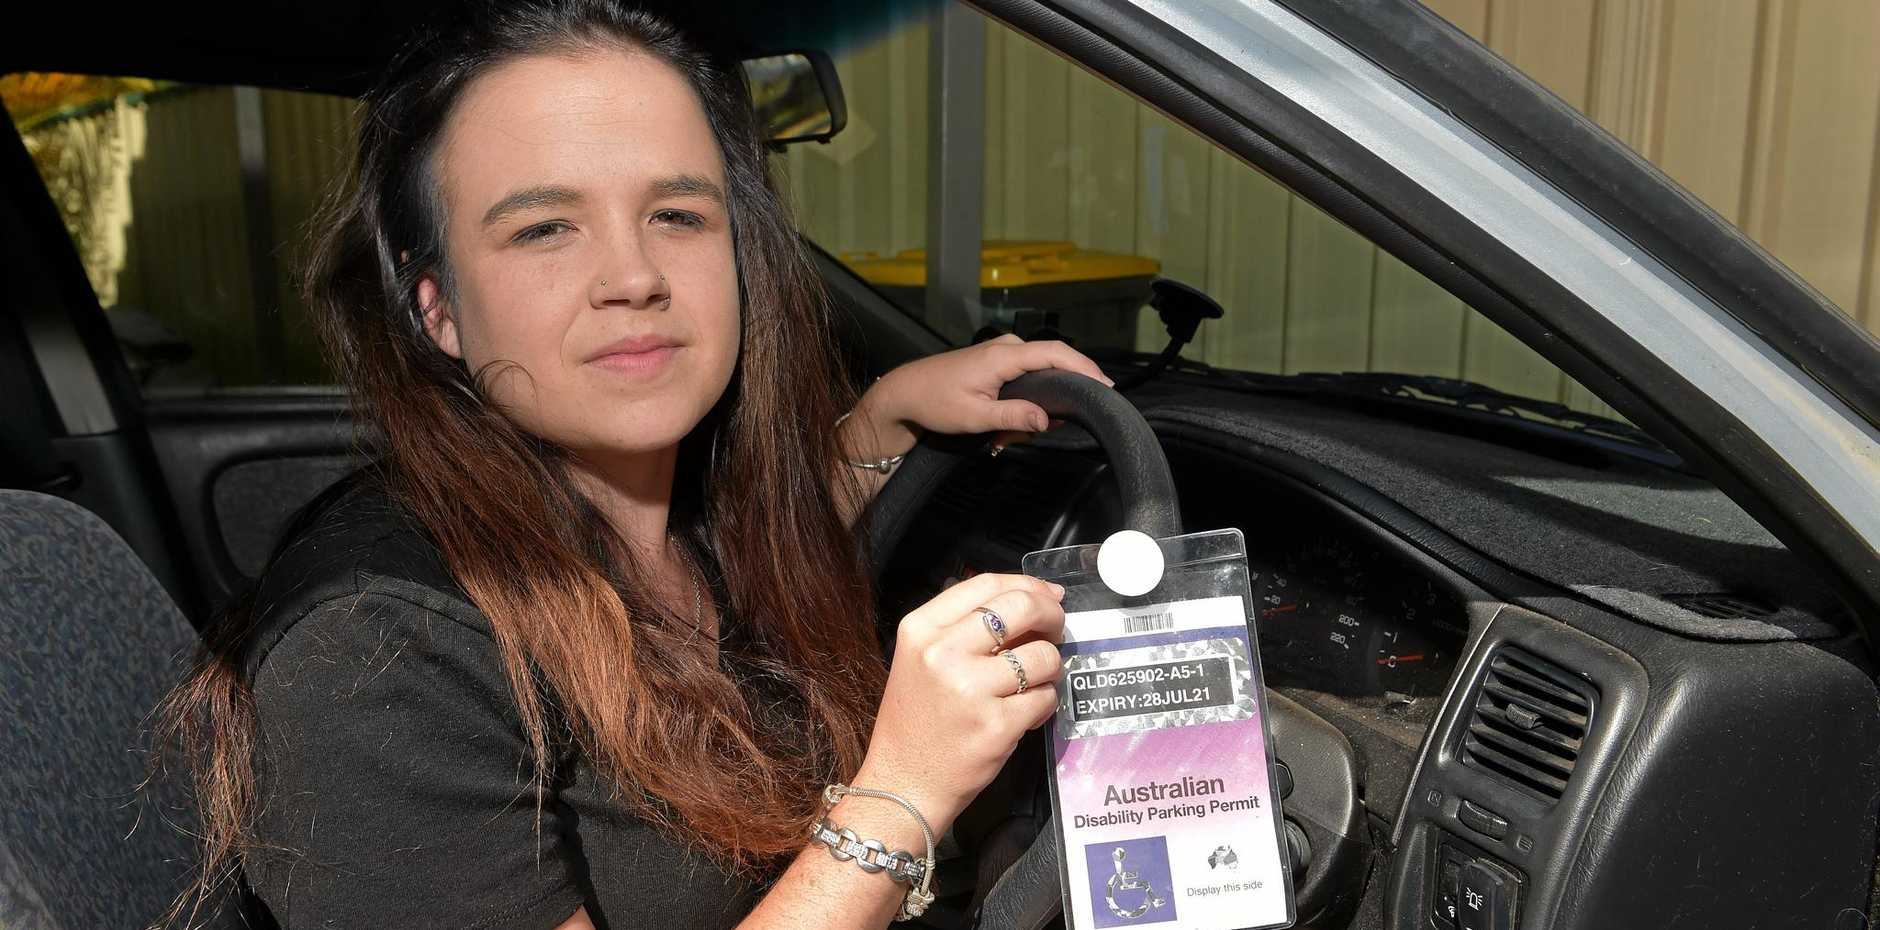 Mikaela Peters is able to use a disabled parking permit despite some people not thinking she is 'diasbled enough'.